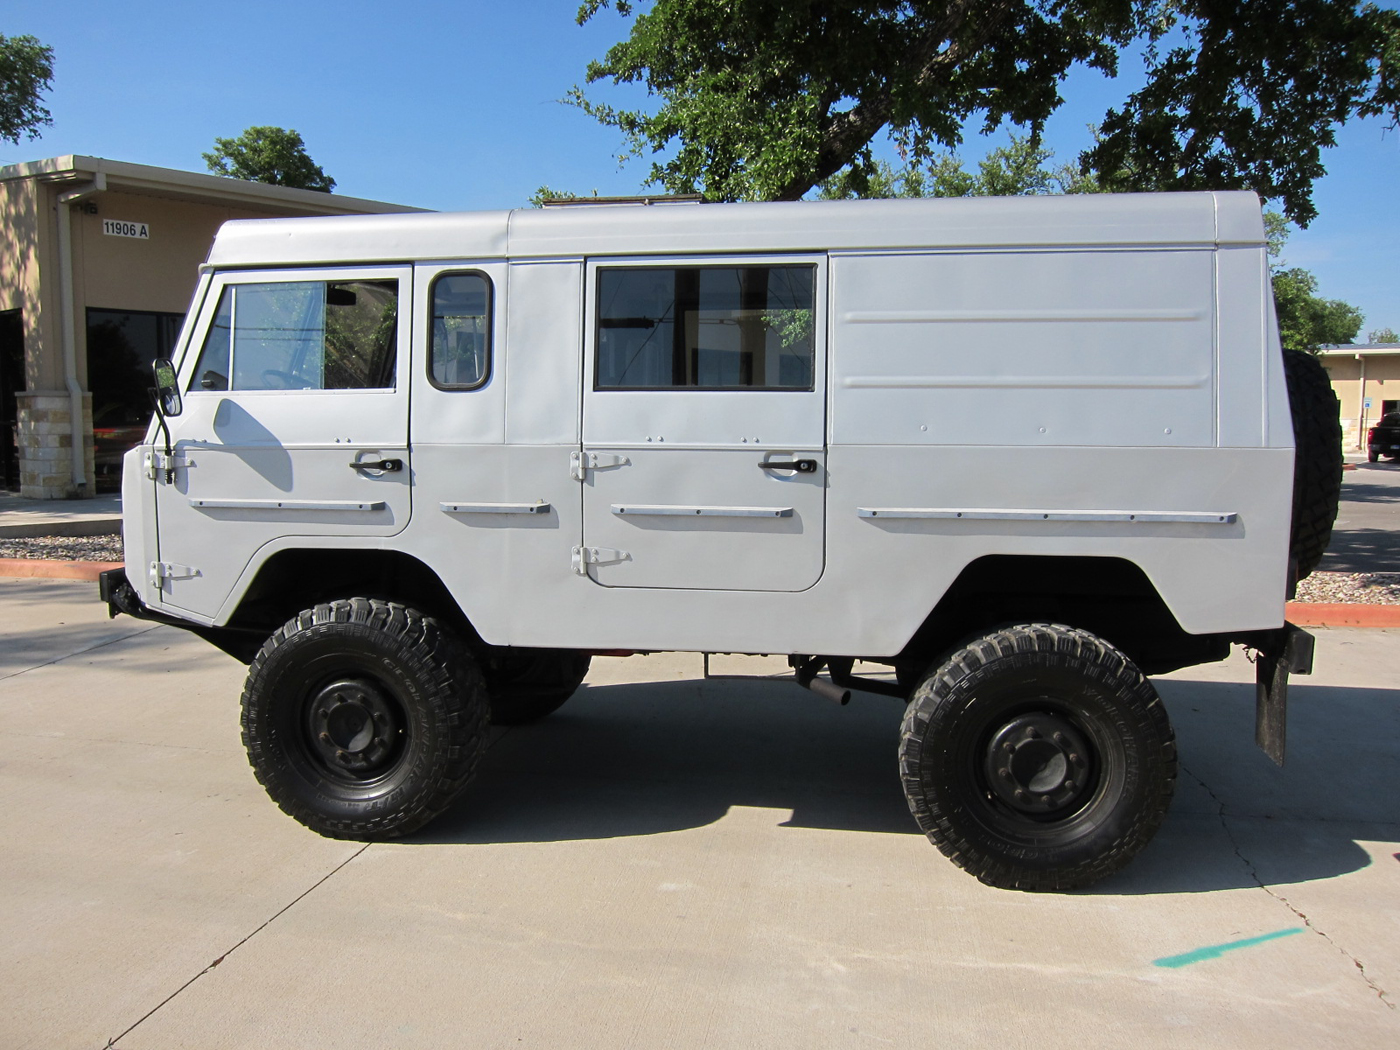 Pinzgauer For Sale Craigslist >> Spotted: 1975 Volvo C303 // West County Explorers Club